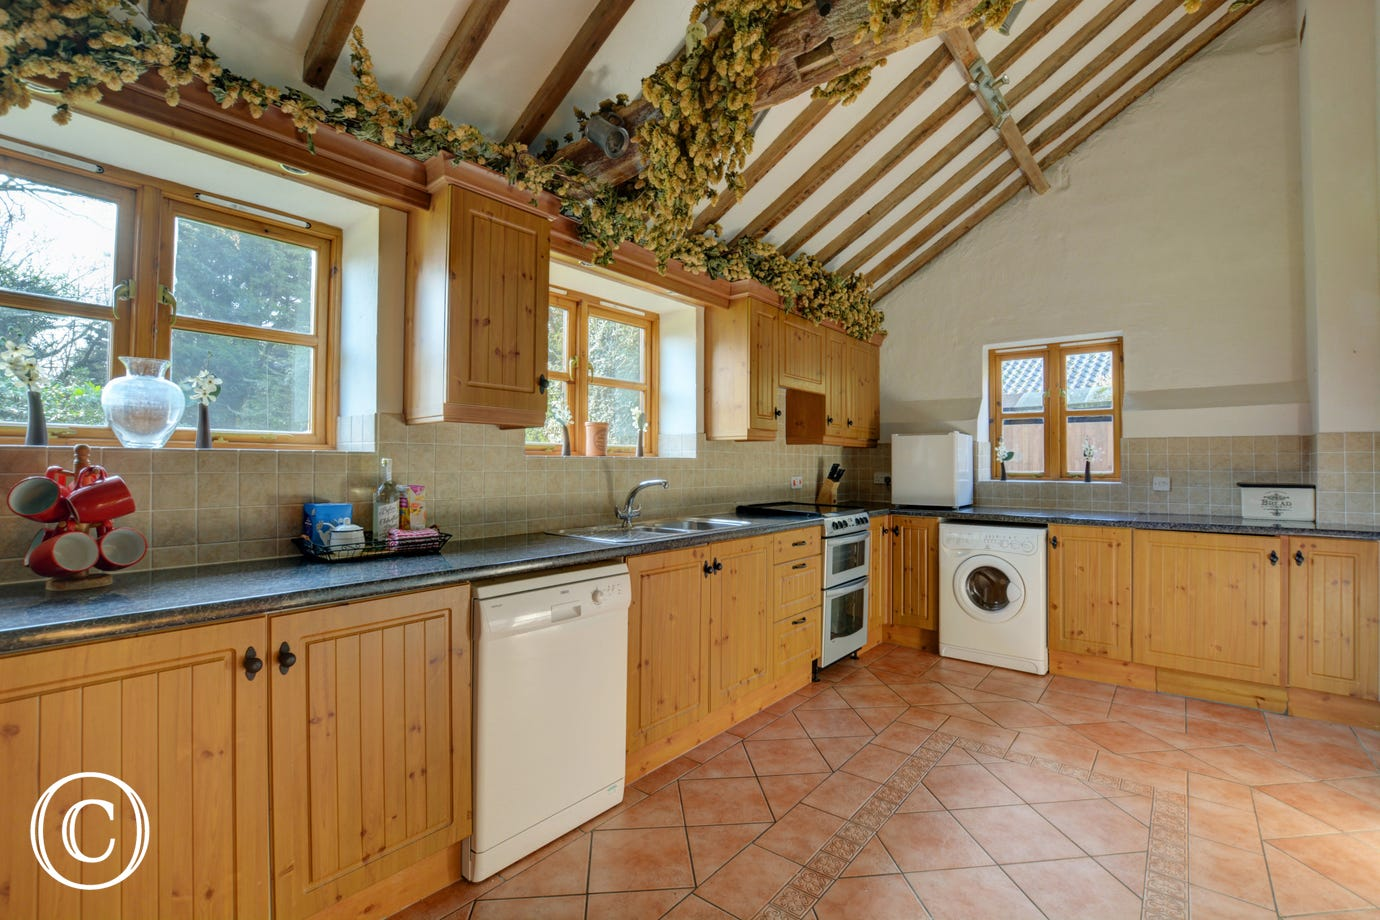 The kitchen is at the rear of the house, with a fitted electric cooker and washing machine. The exposed beams add character to the room